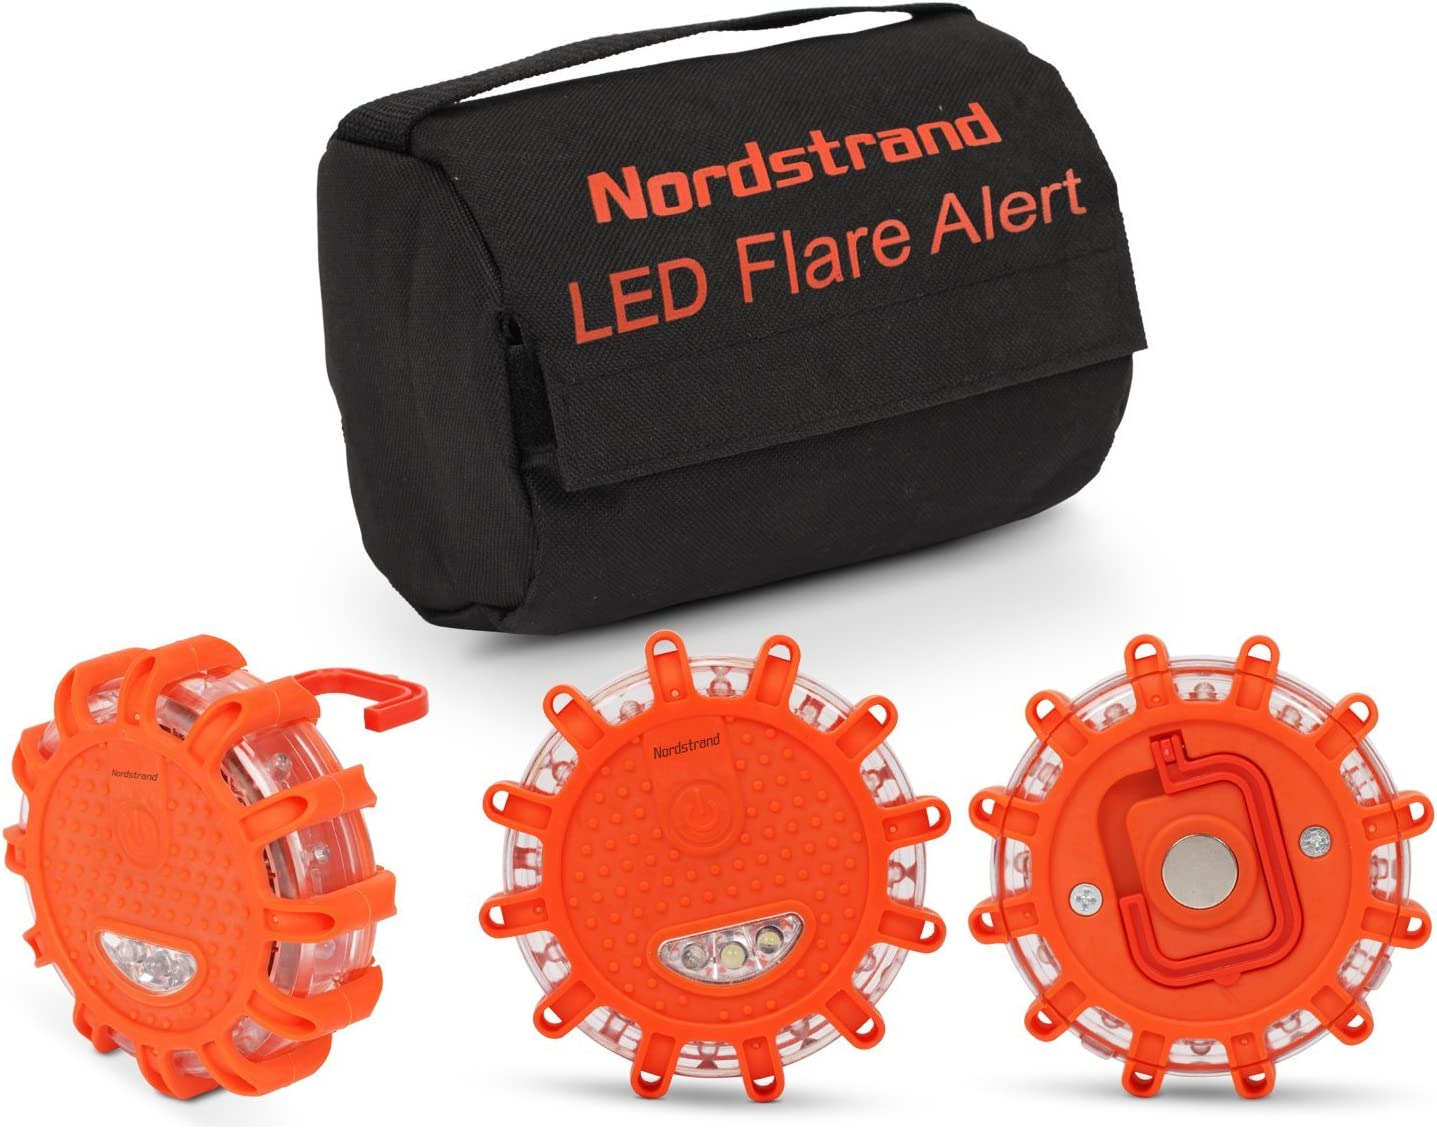 GoGoIT 3 PACK LED Road Flares Flashing Warning Roadside Flare Emergency Disc Beacon with Magnetic Base for Car,Boat,Bicycle //2 Year Warranty//FREE AAA BATTERIES*9//FREE BAG//PACK OF 3//Mini Screw Driver